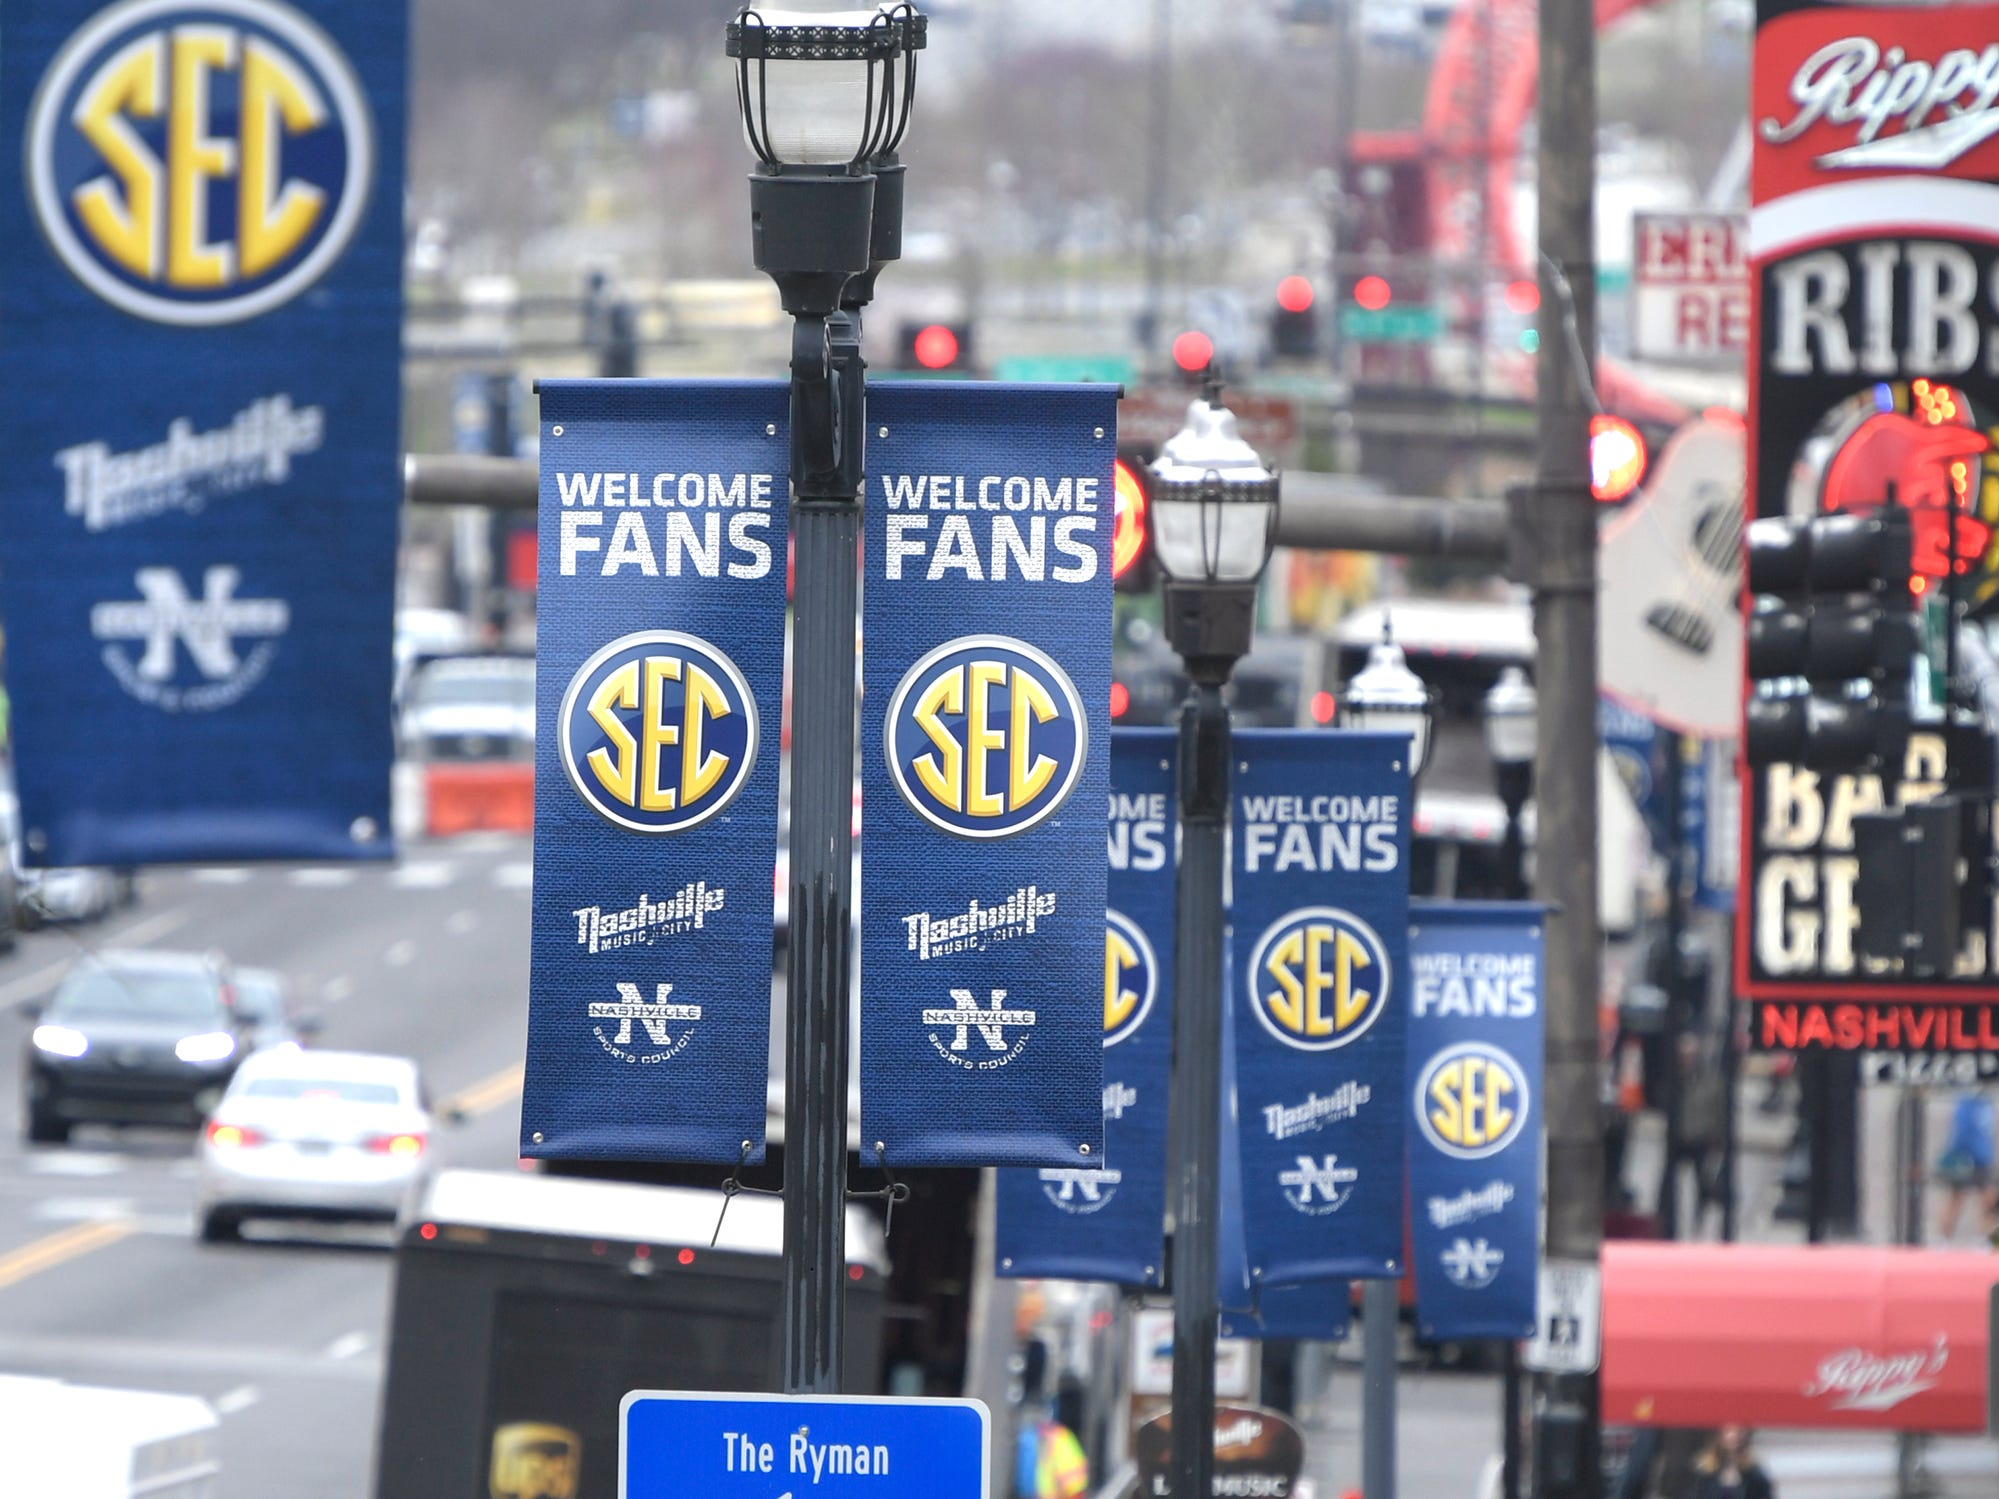 SEC Men's Basketball Tournament banners hang in downtown Nashville on Wednesday, March 13, 2019.